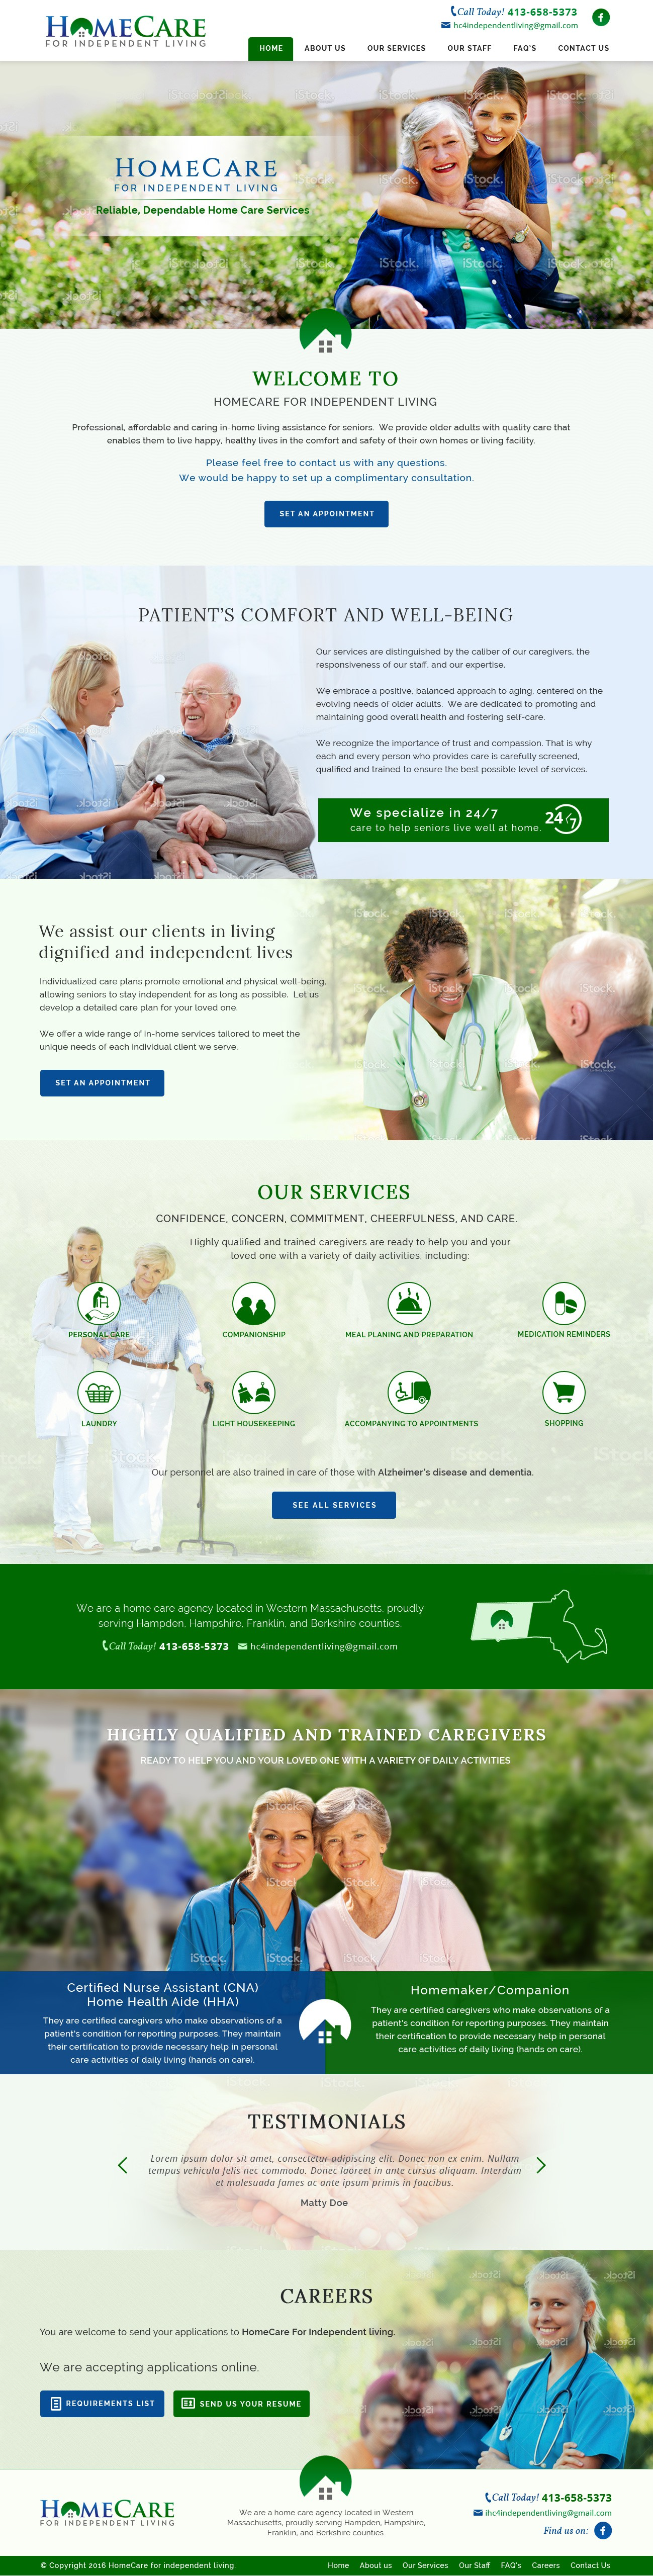 Create a welcoming and professional looking webpage for a home care agency